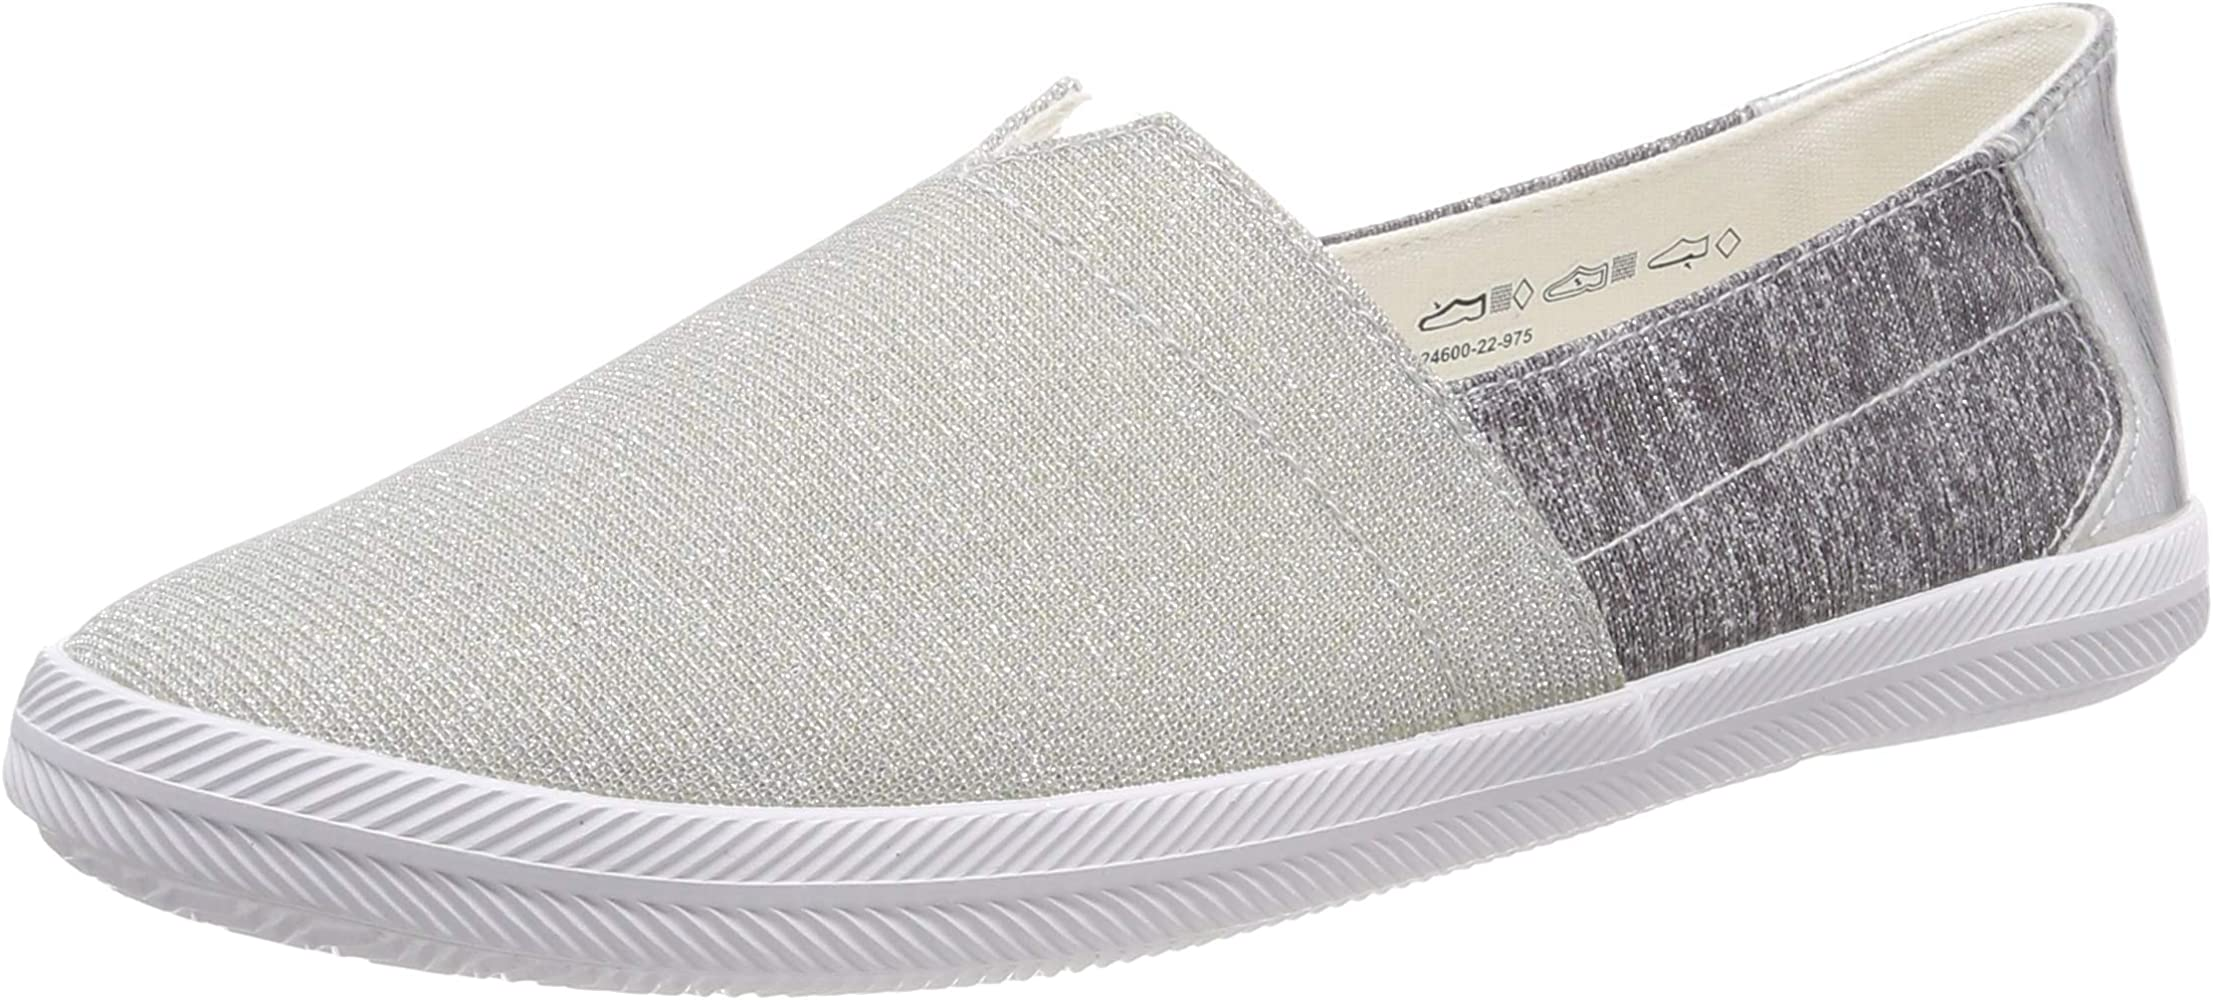 Damen 1 1 24600 22 Slipper